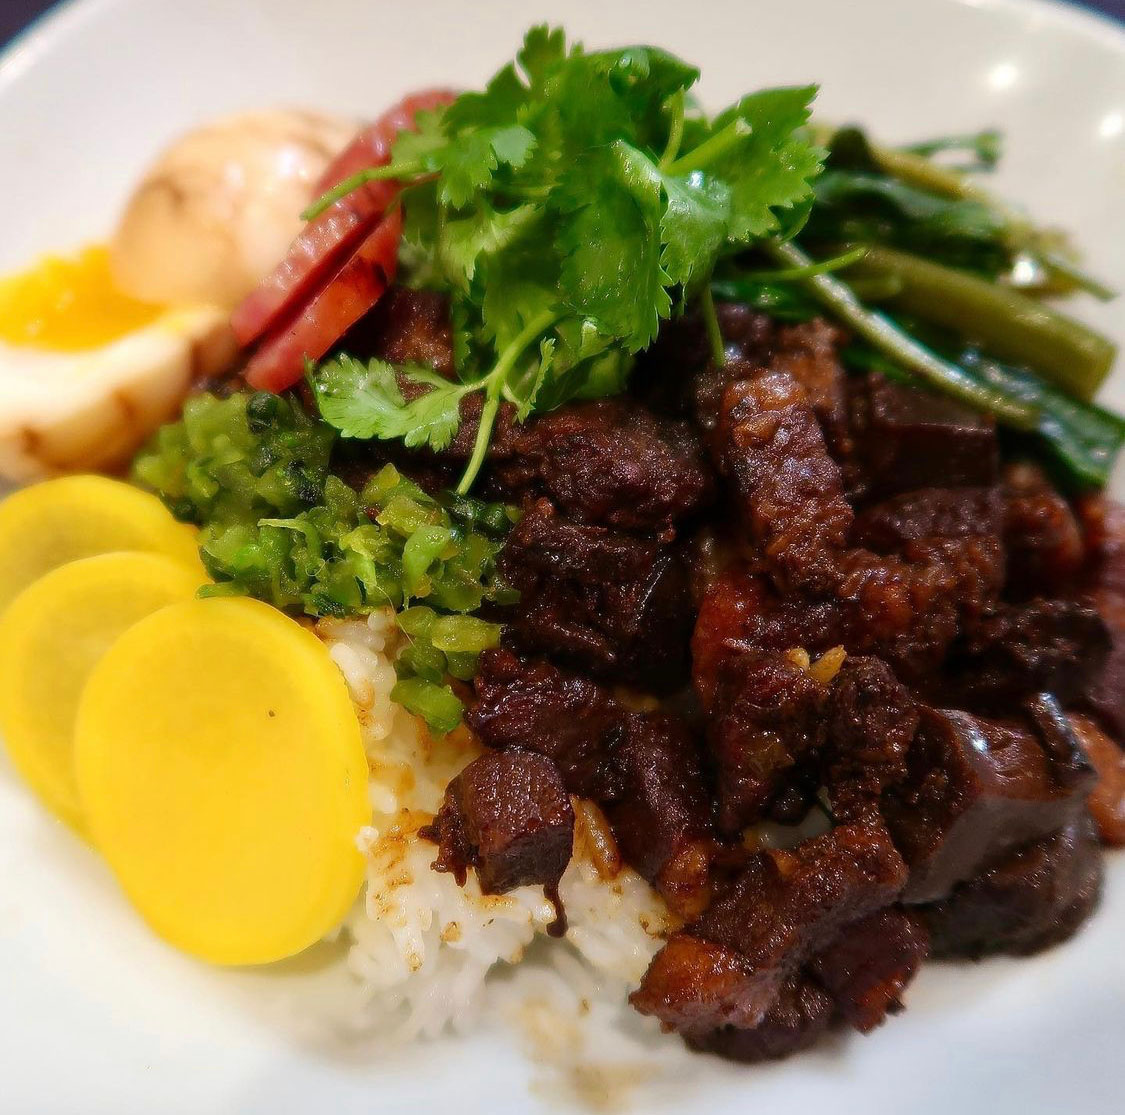 A bowl of lu rou fan, or braised pork rice, garnished with cilantro and yellow daikon pickles.